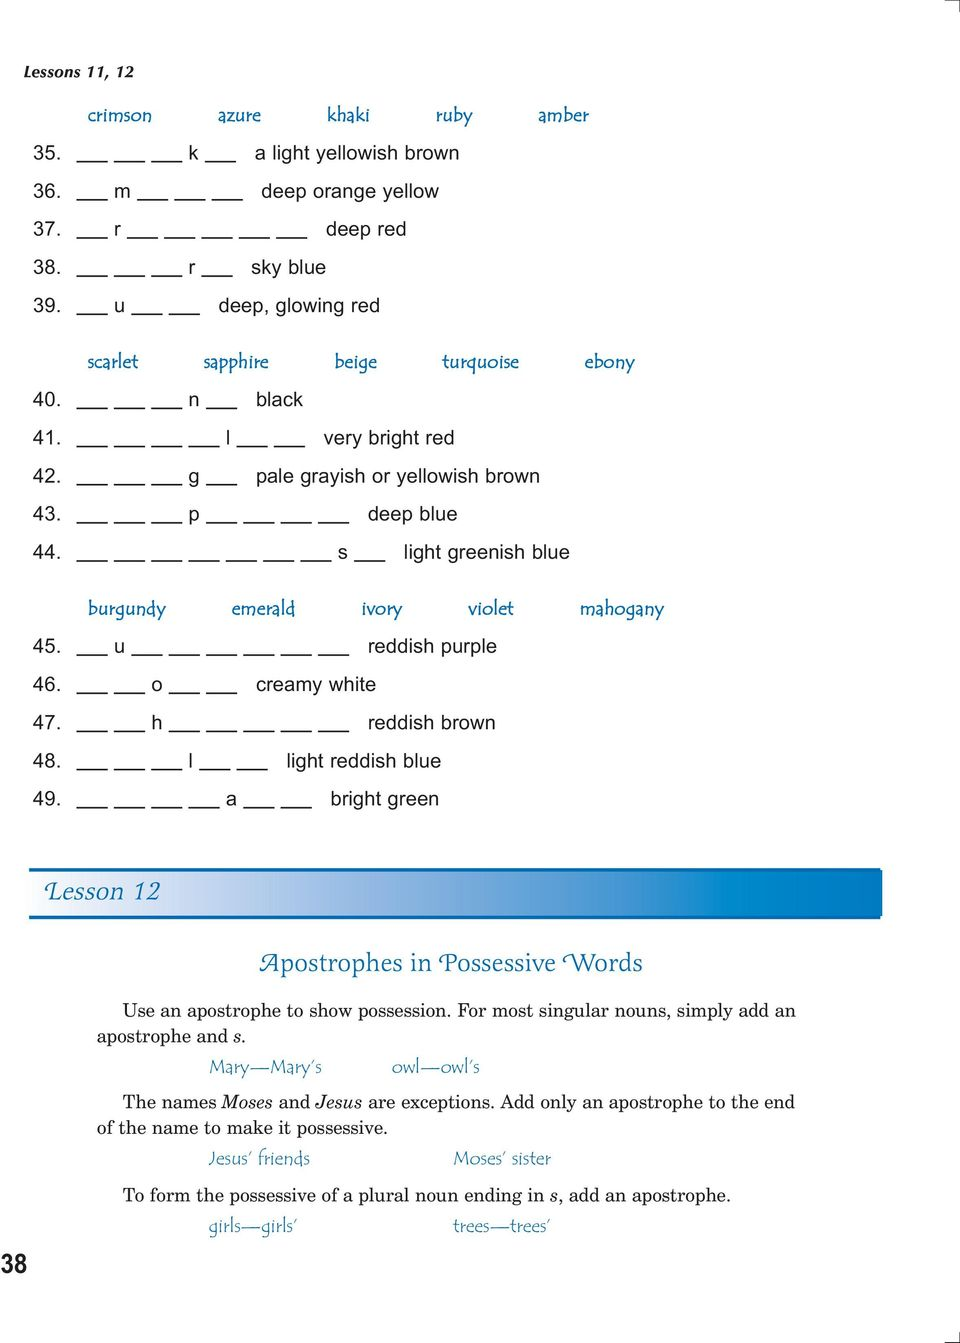 Preposition review put parentheses around the prepositional phrases h reddish brown 48 l light reddish blue 49 a bright green lesson 12 fandeluxe Choice Image